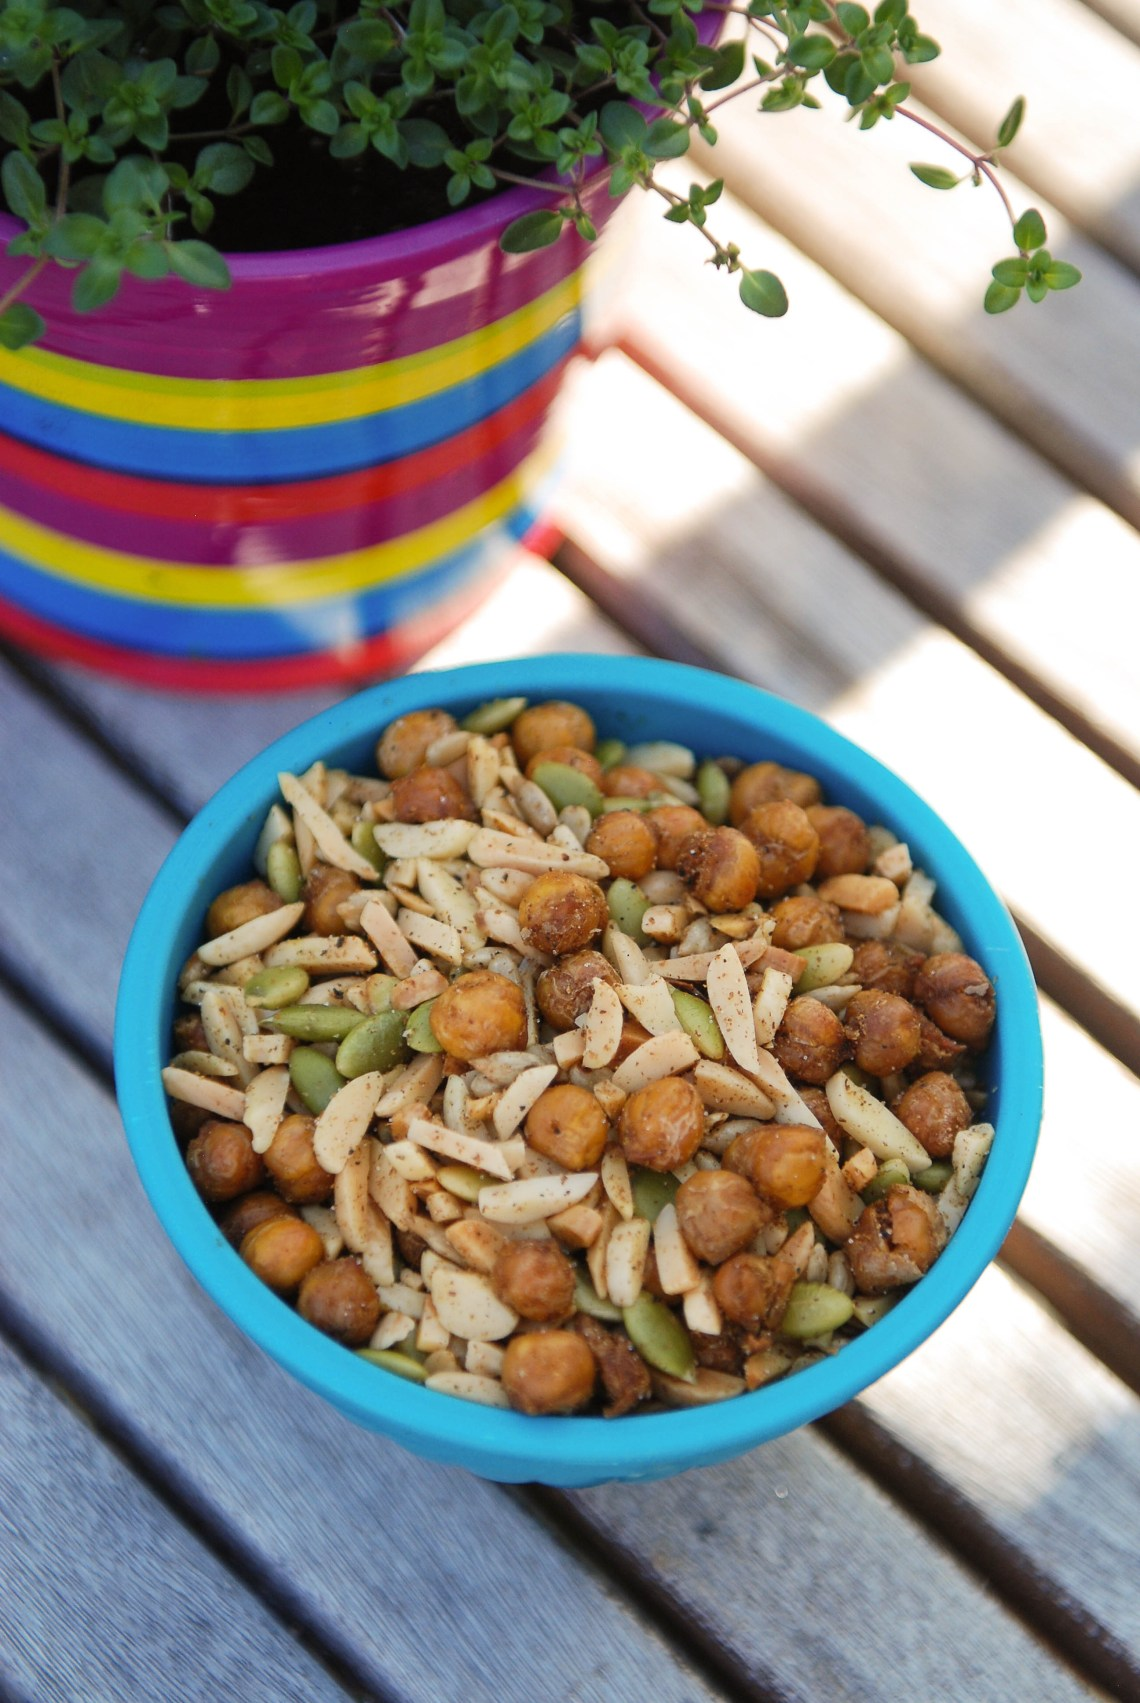 Spicy Roasted Chickpeas from Nourish on Nutmeg Disrupted